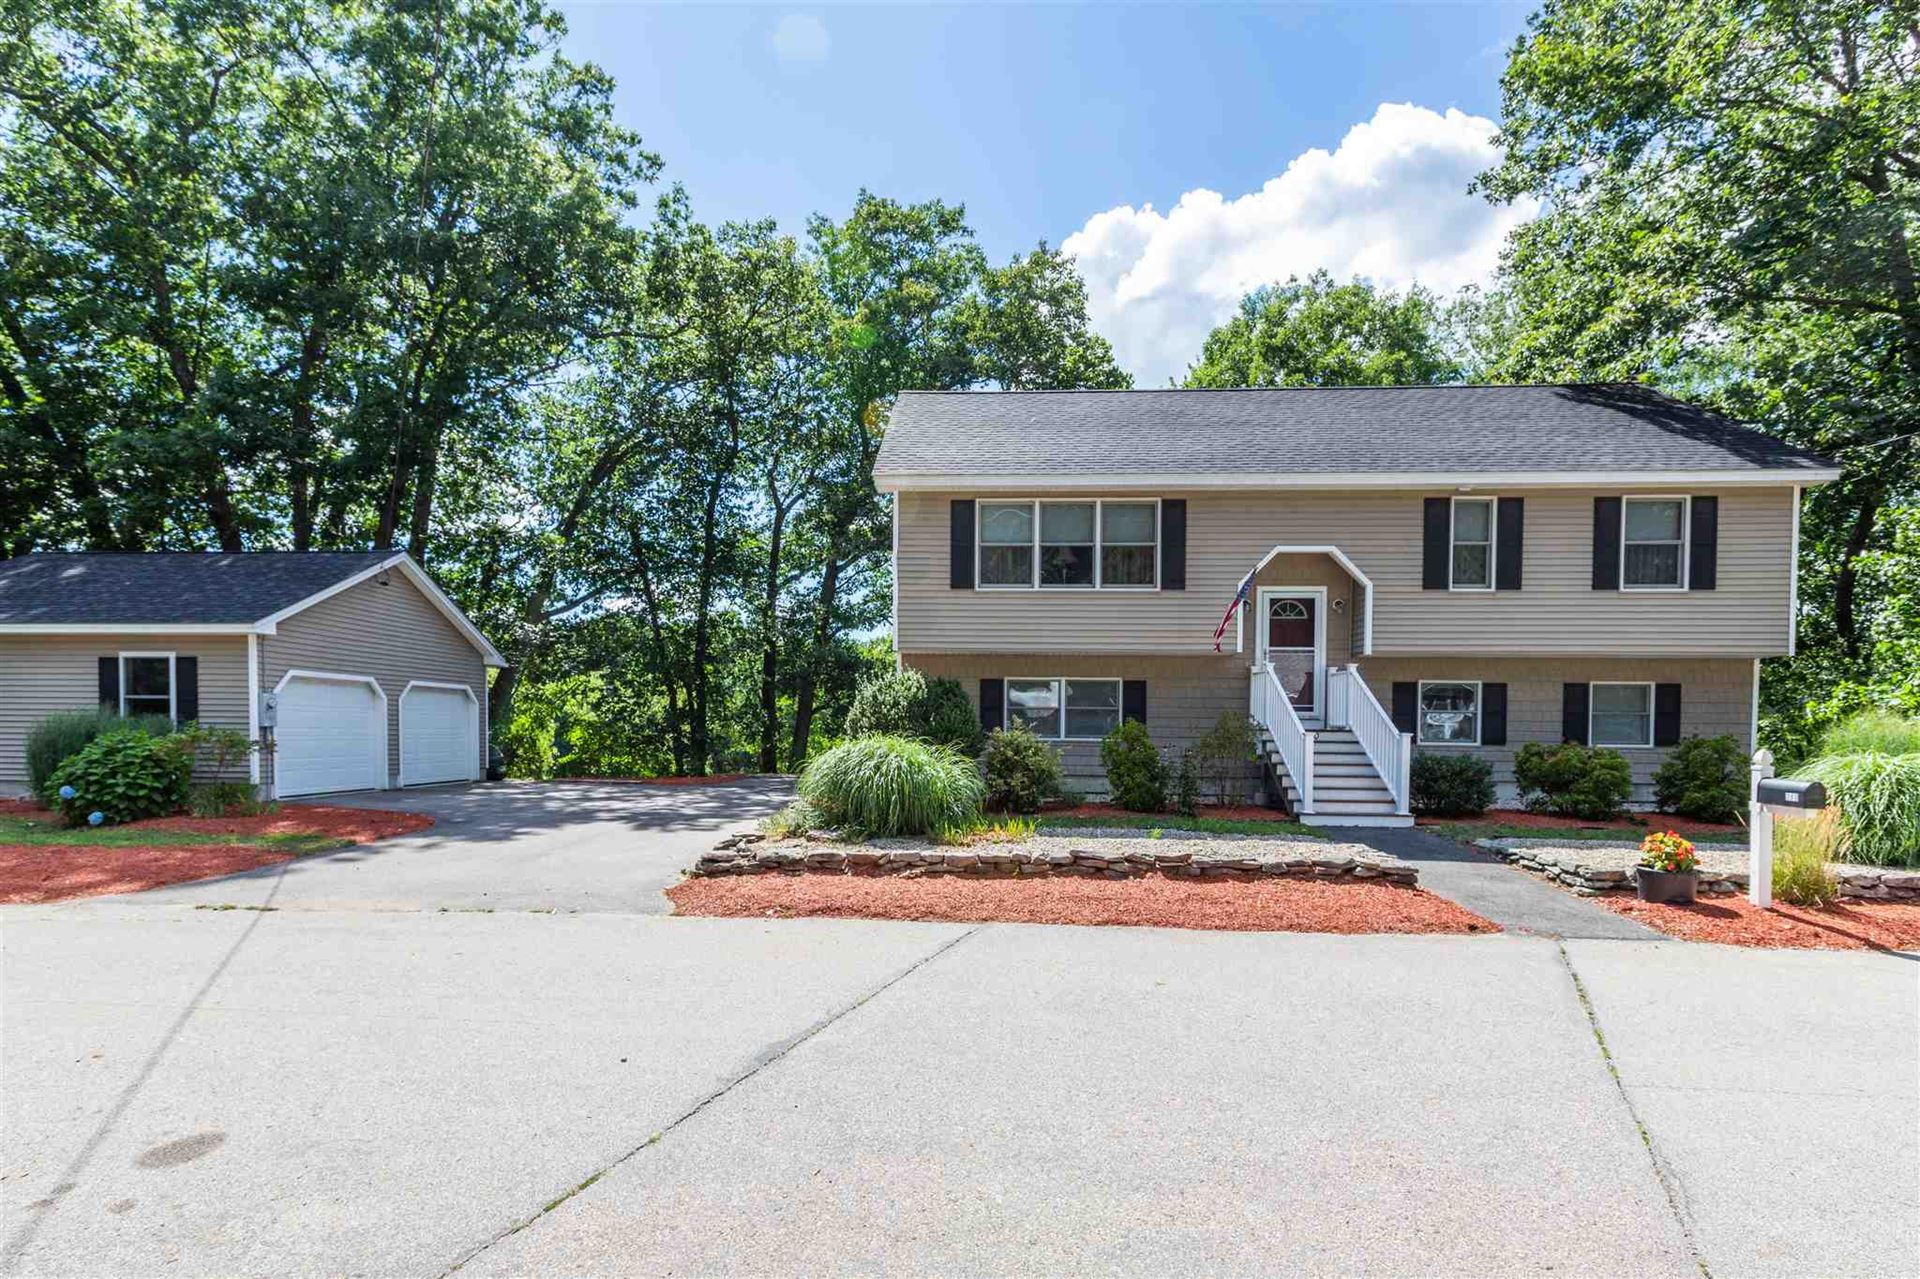 280 Riverdale Avenue, Manchester, NH 03103 - MLS#: 4820985